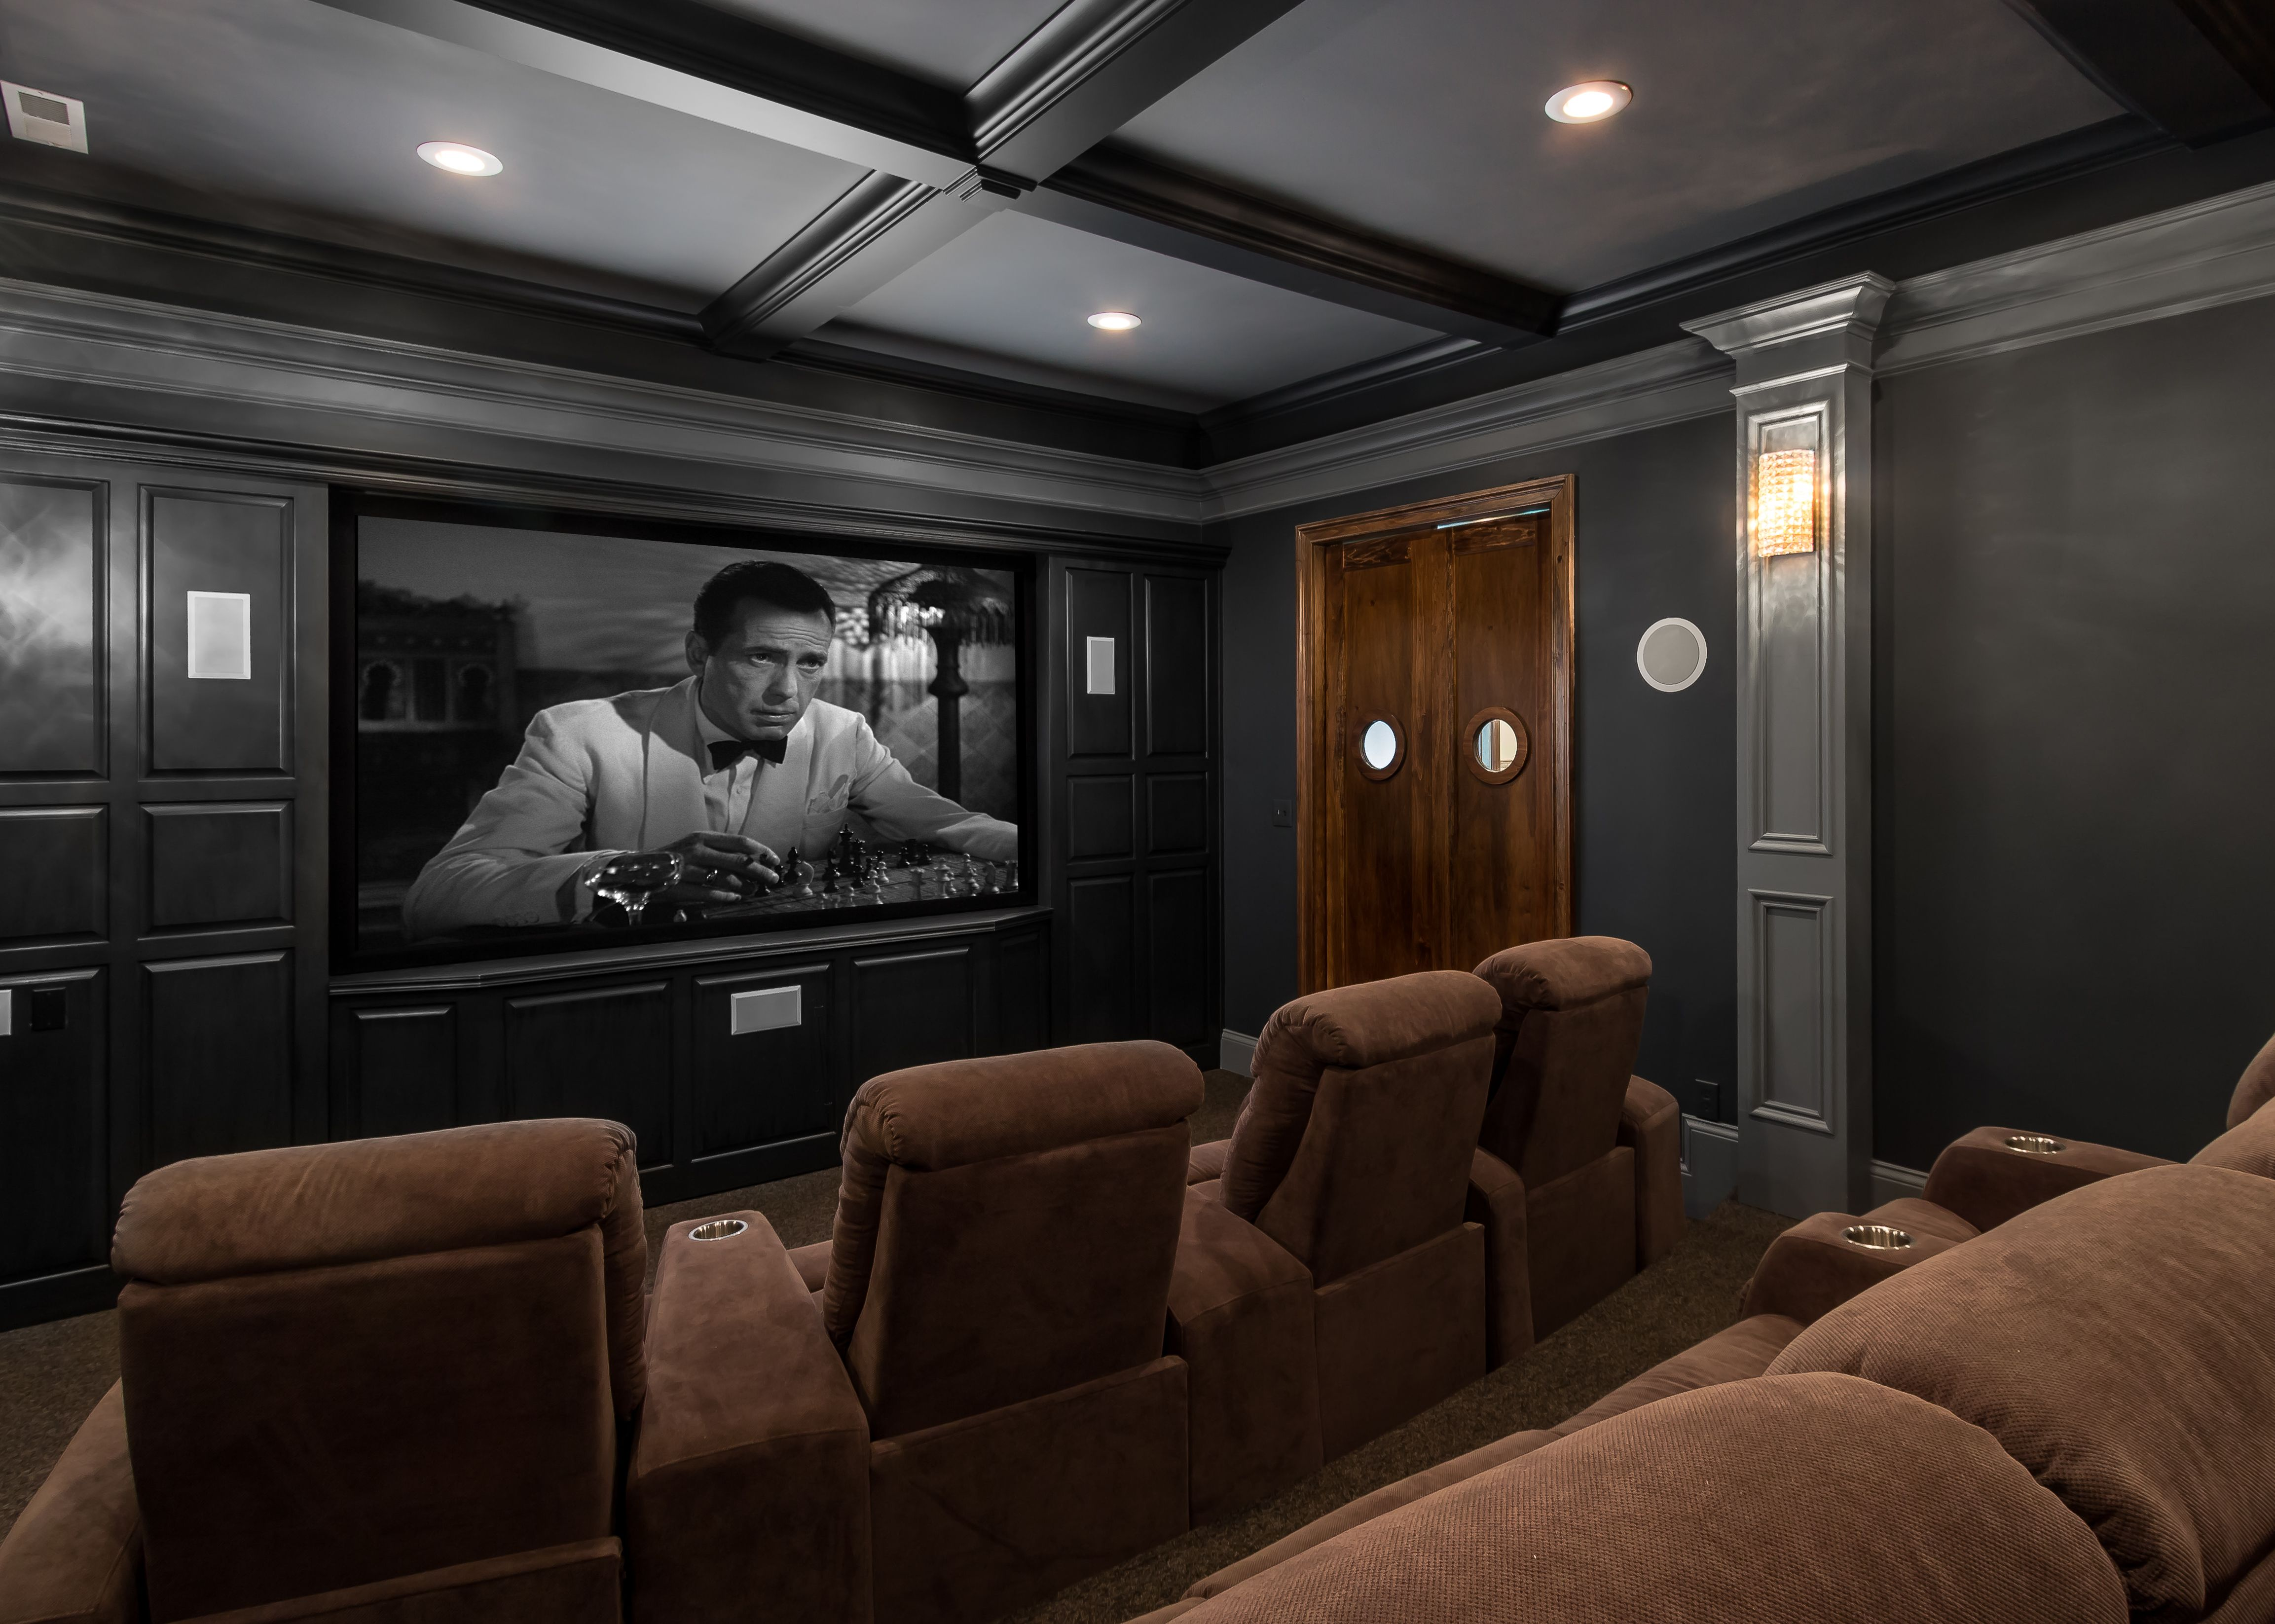 Media Room With Elevated Theater Seating And Authentic Double